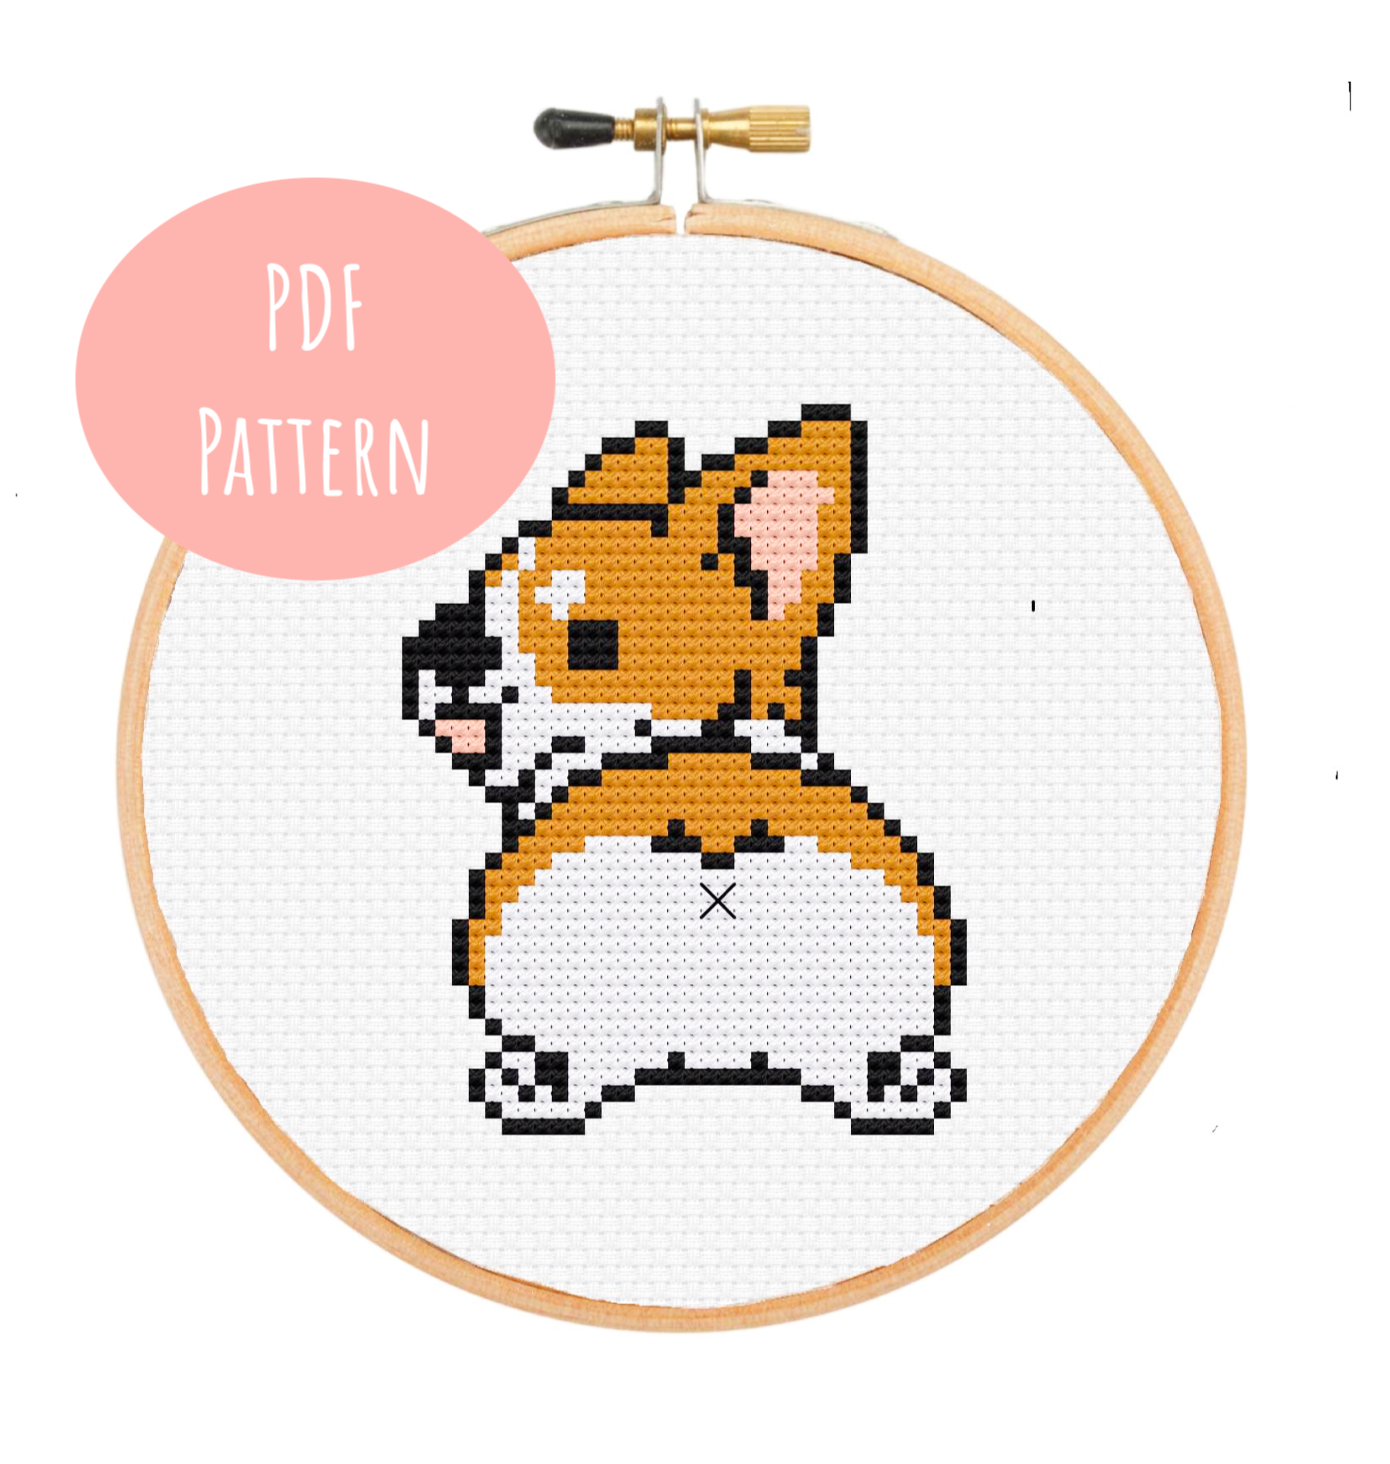 Corgi Butt Cross Stitch - PDF Instructions